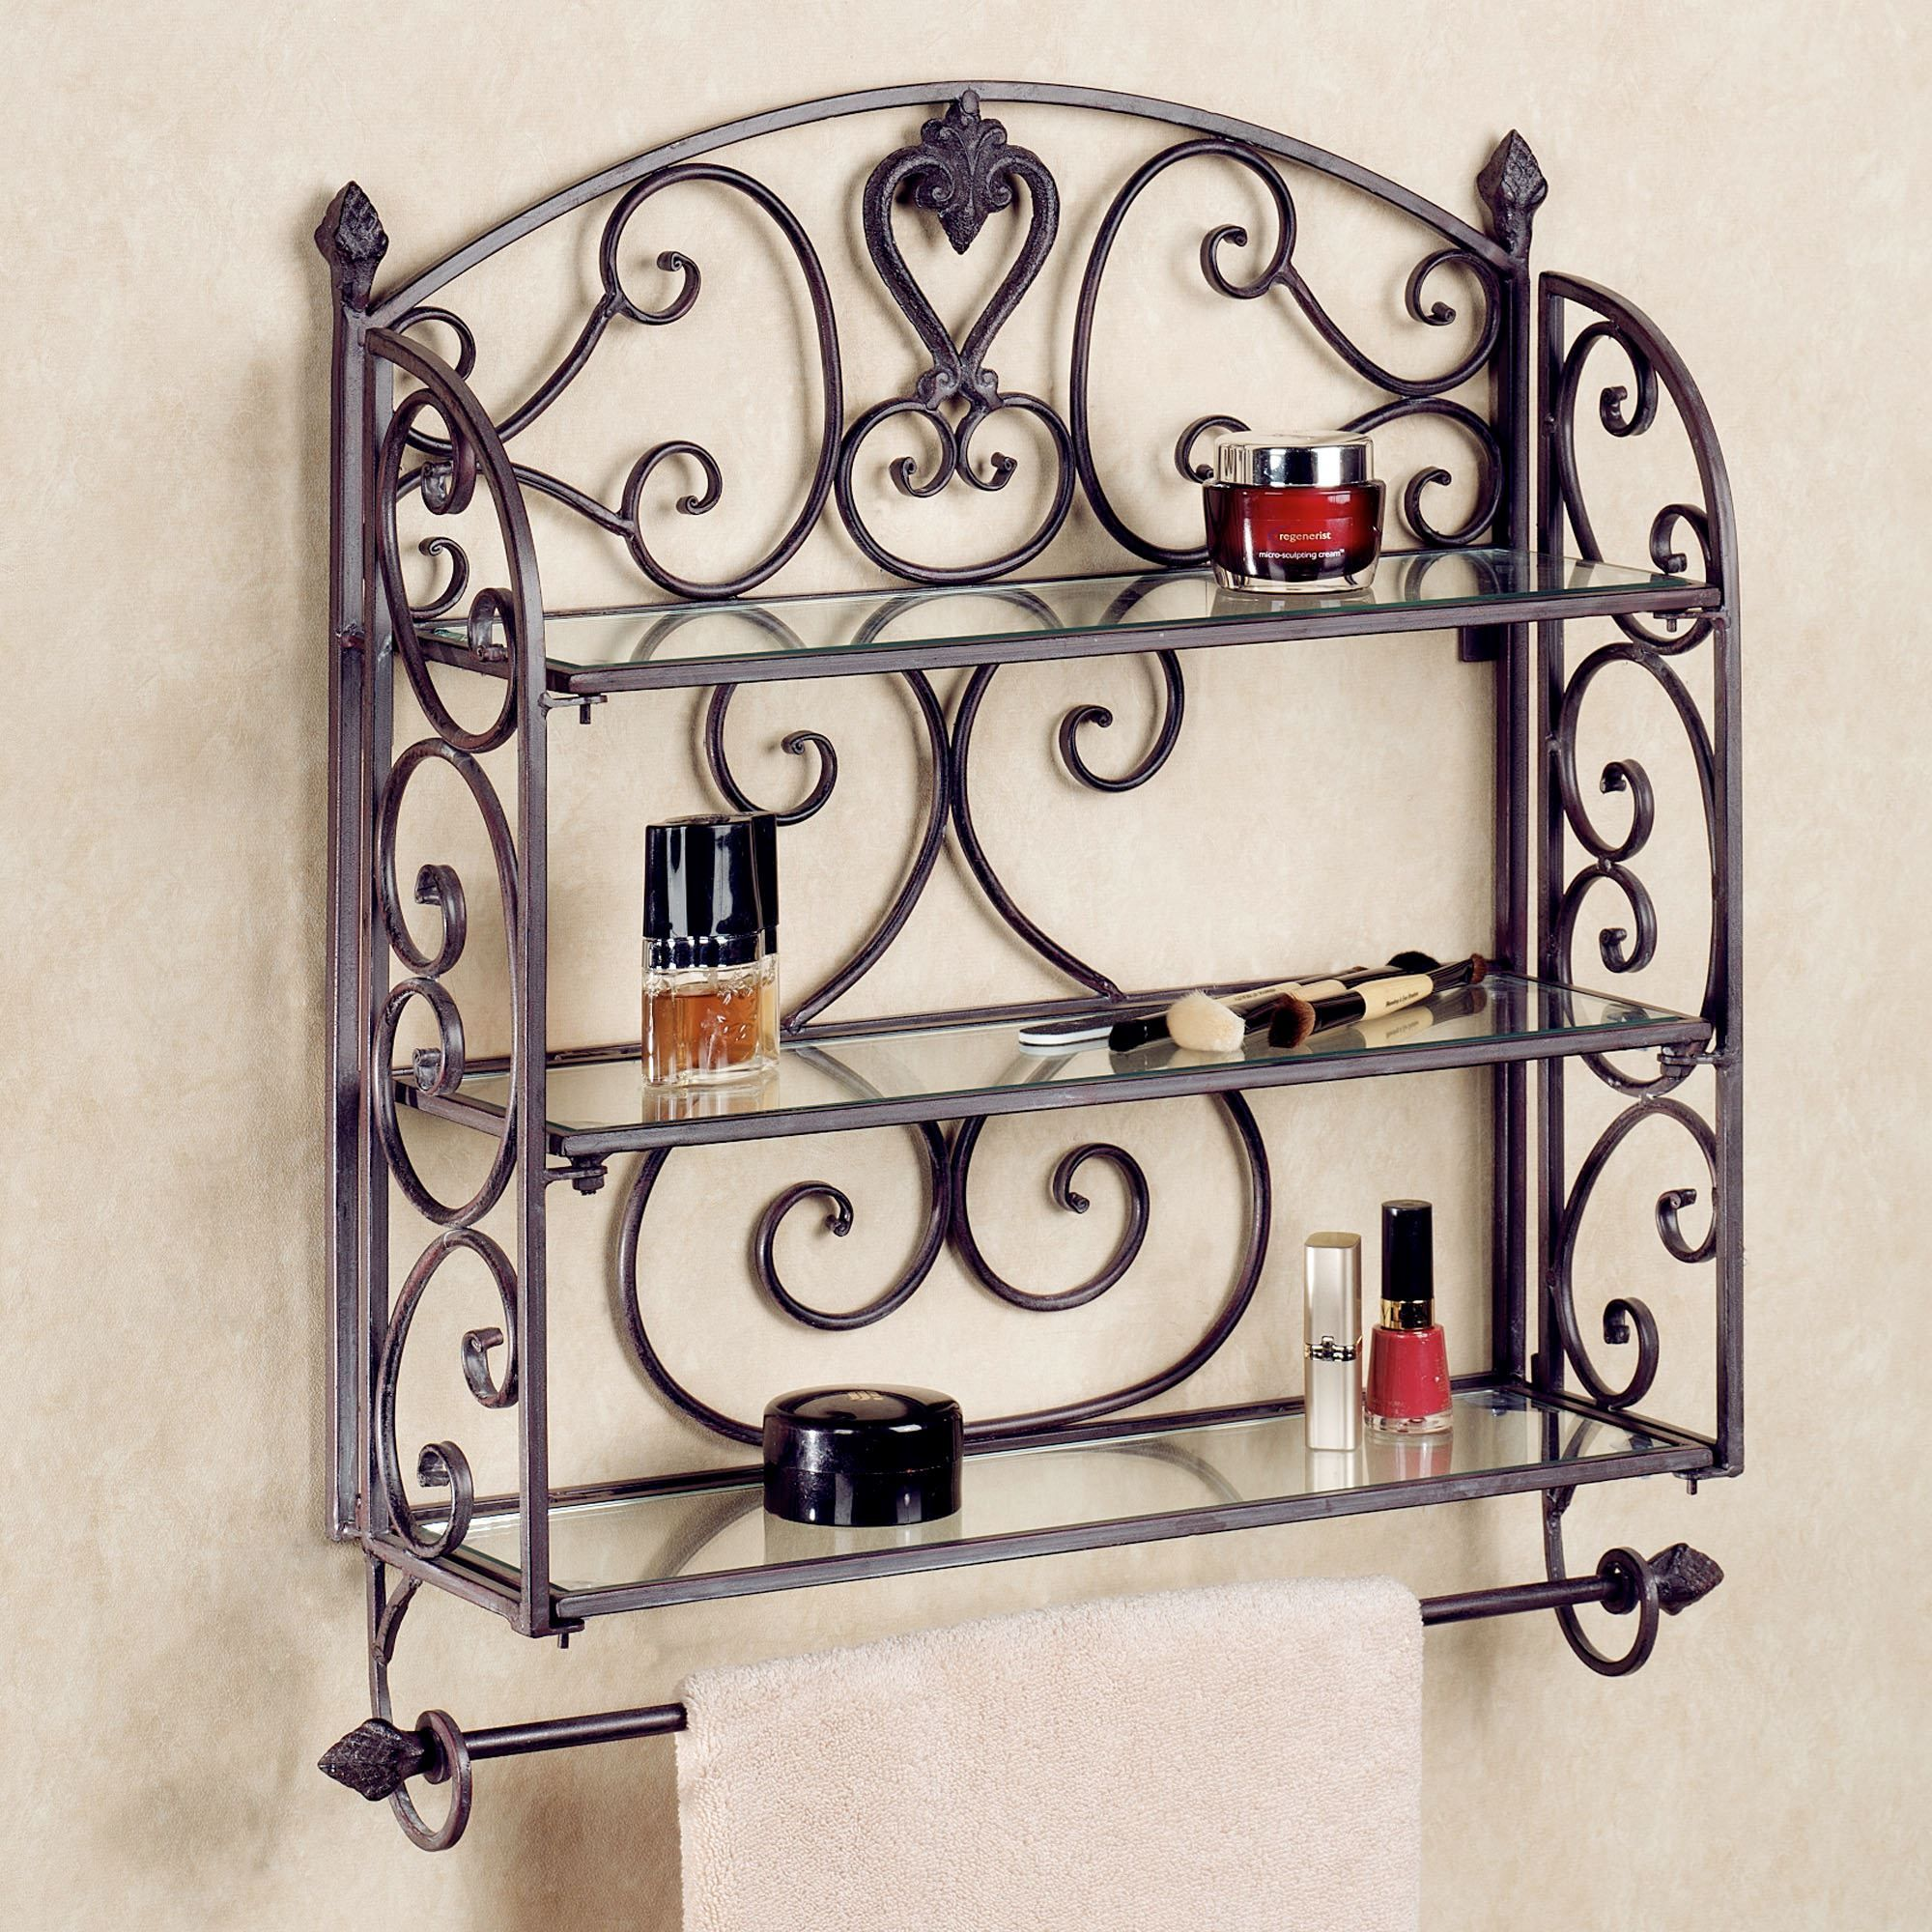 Aldabella Tuscan Slate Wall Shelf Towel Bar | Slate, Towels and Shelves